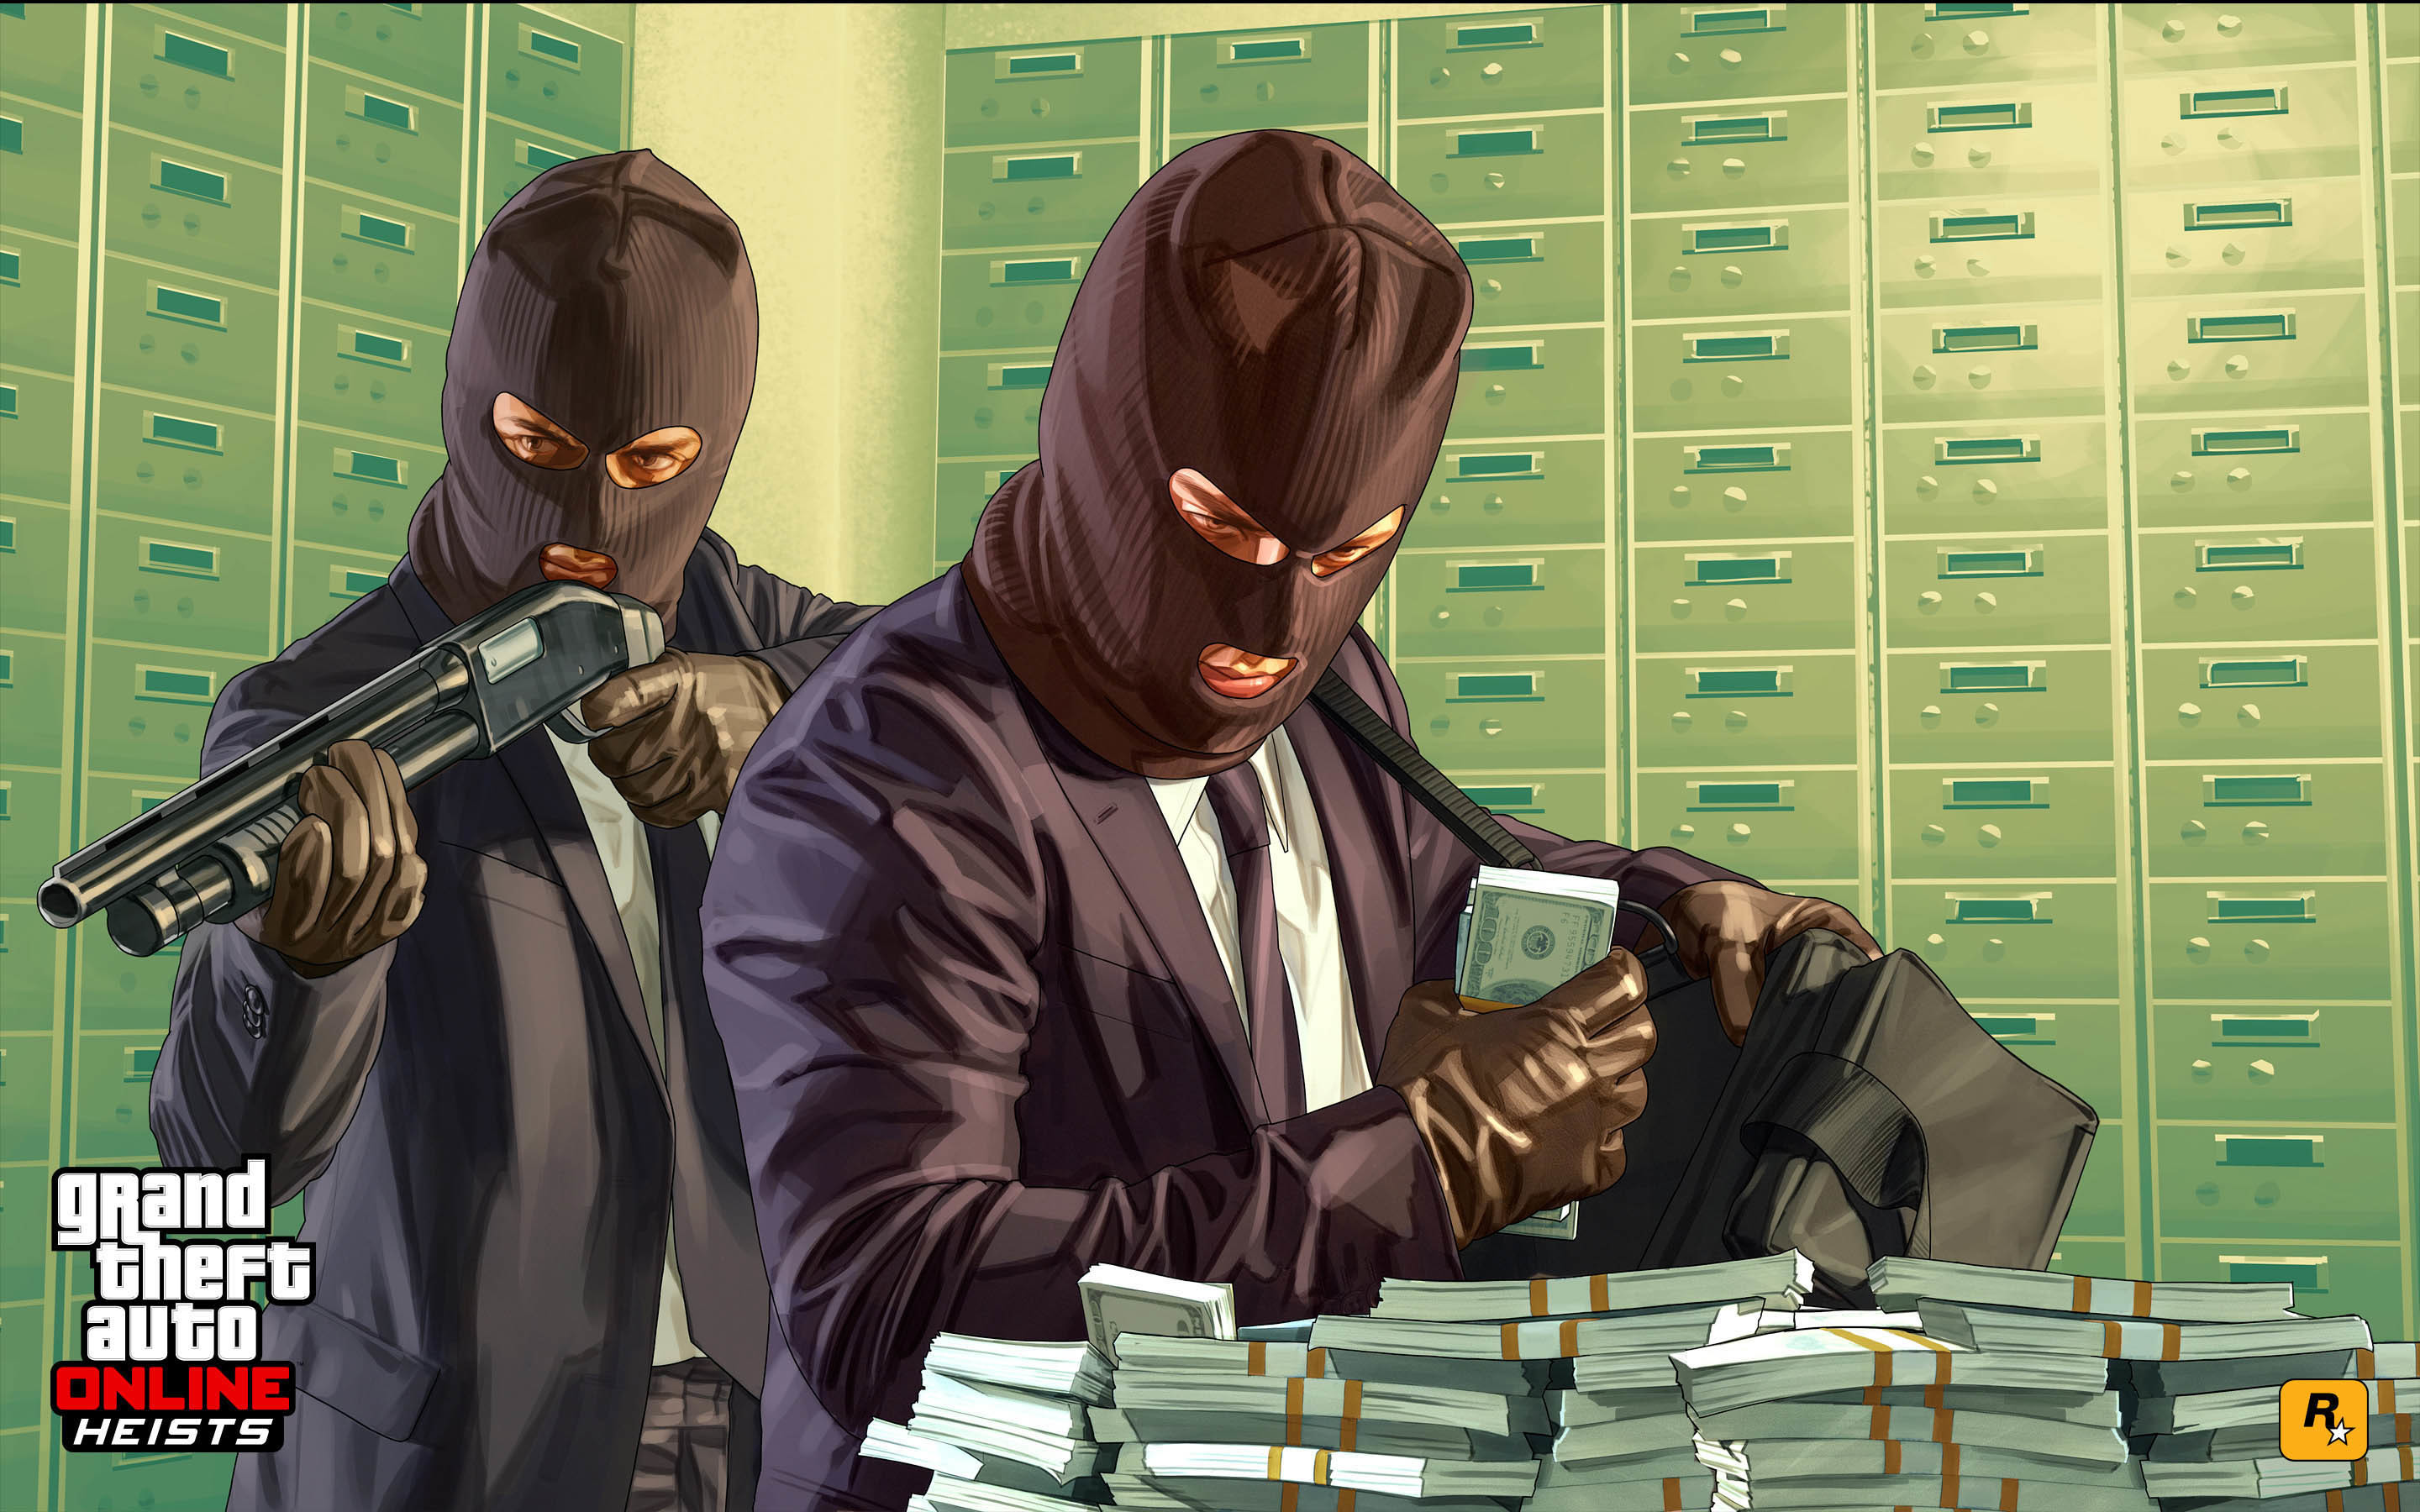 Res: 2880x1800, Bank Heist - GTA 5 Online Update  wallpaper